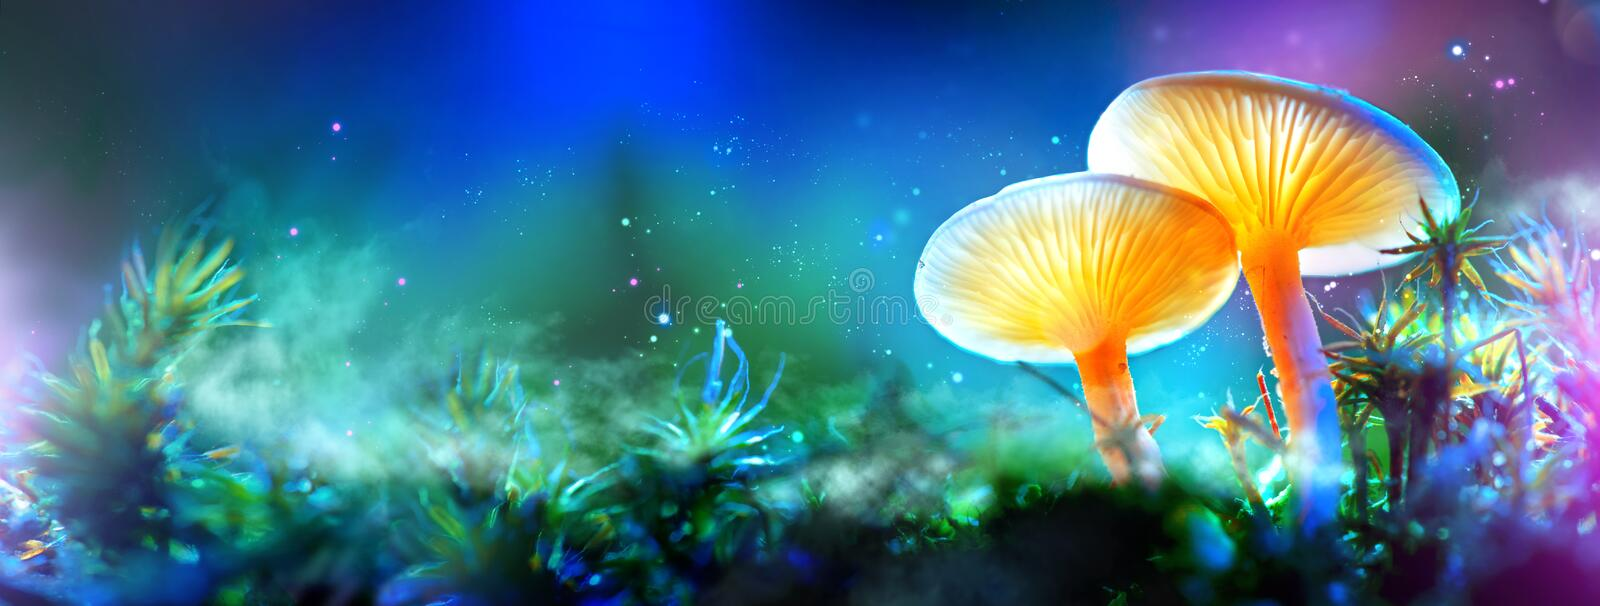 Download Mushroom. Fantasy Glowing Mushrooms In Mystery Dark Forest Stock Image - Image of darkness, green: 101973449